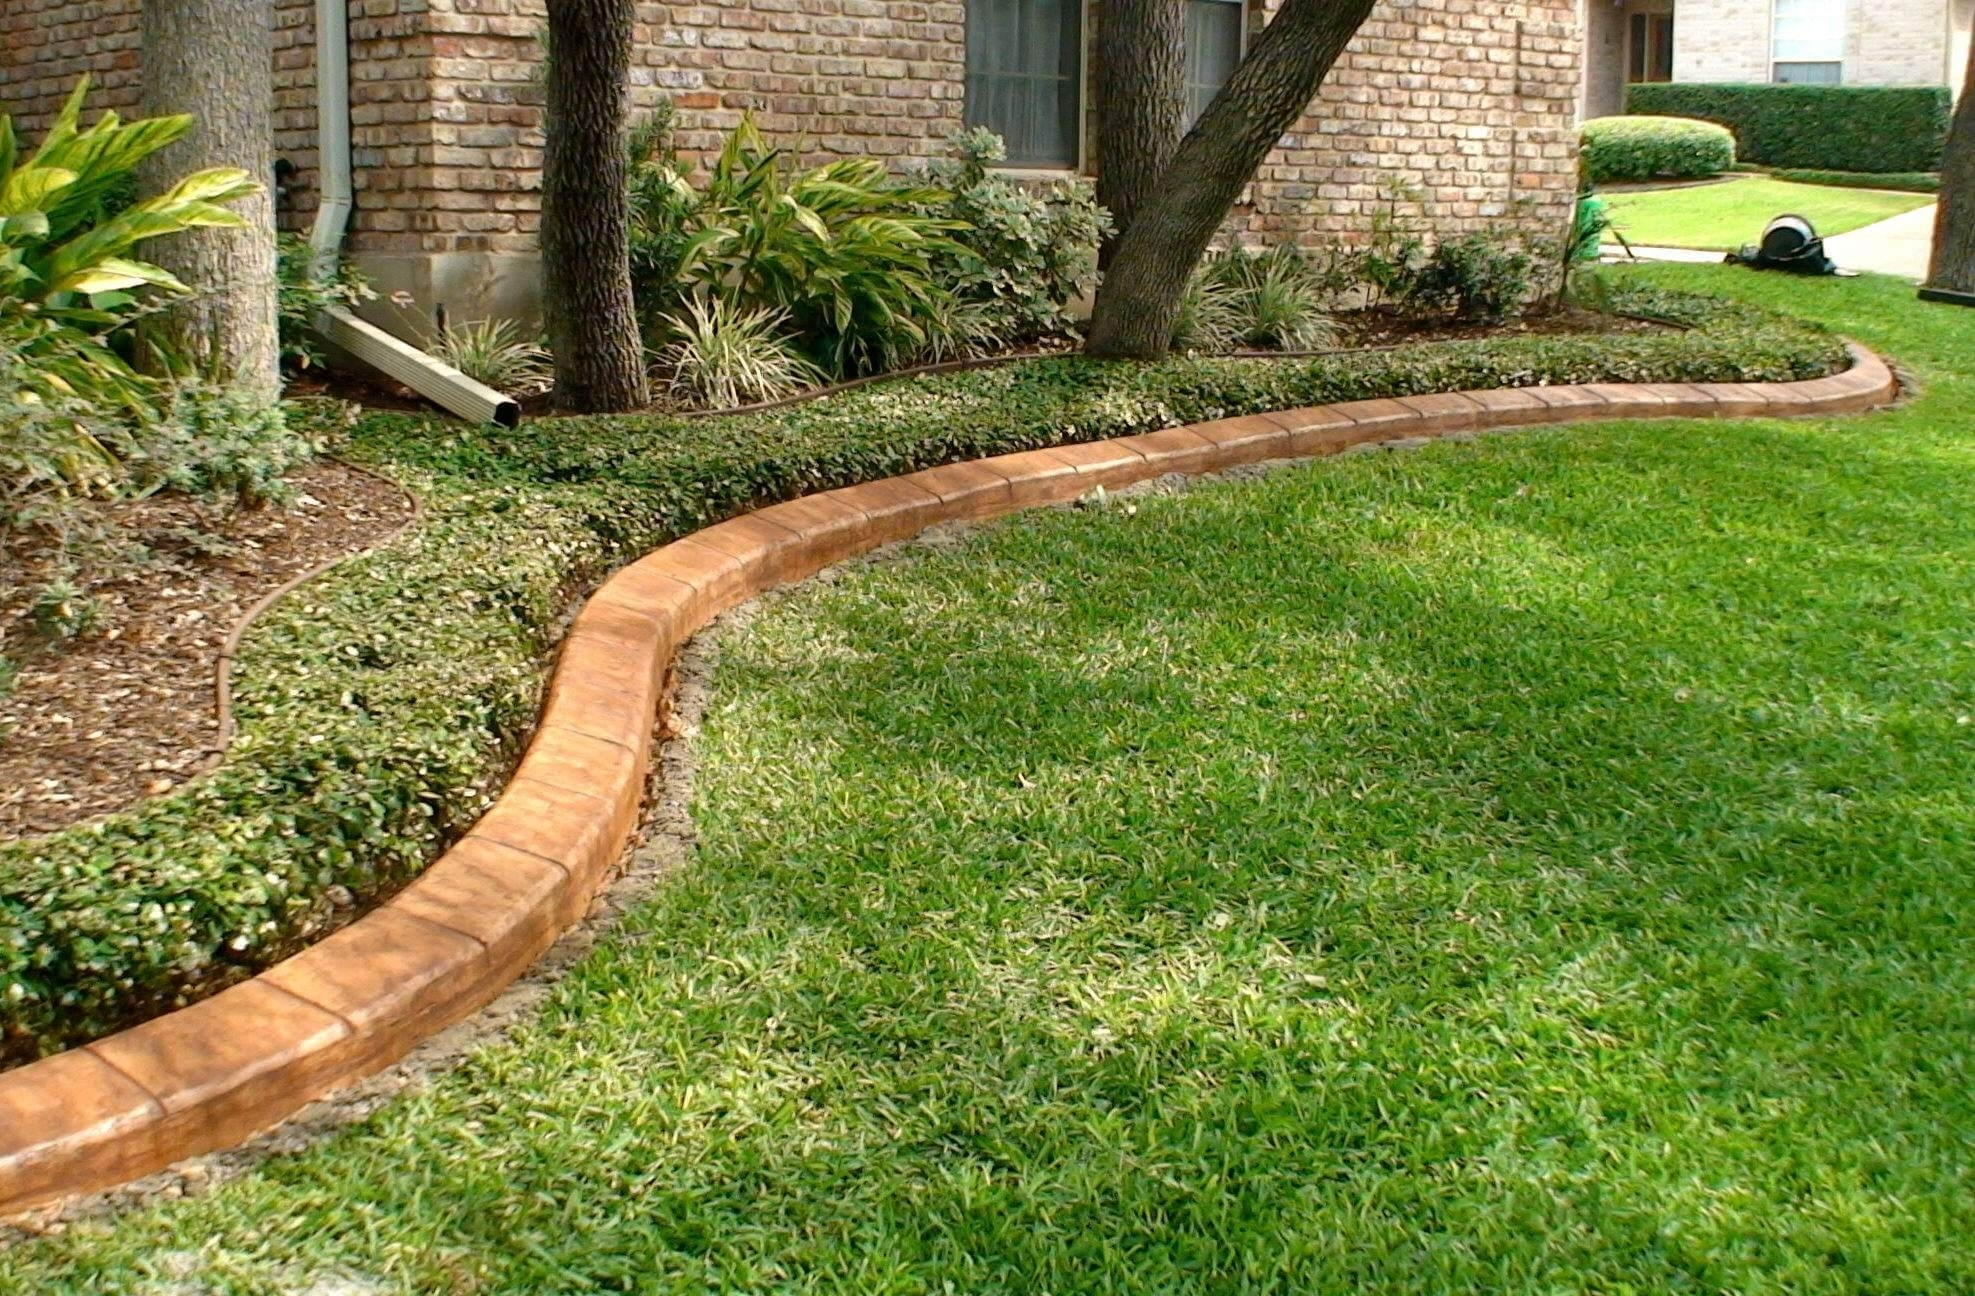 Decorative Concrete Curbing The Sodfather Titusville Fl With Regard To Landscape Concrete Edging Installation Landscape Concrete Edging Installation